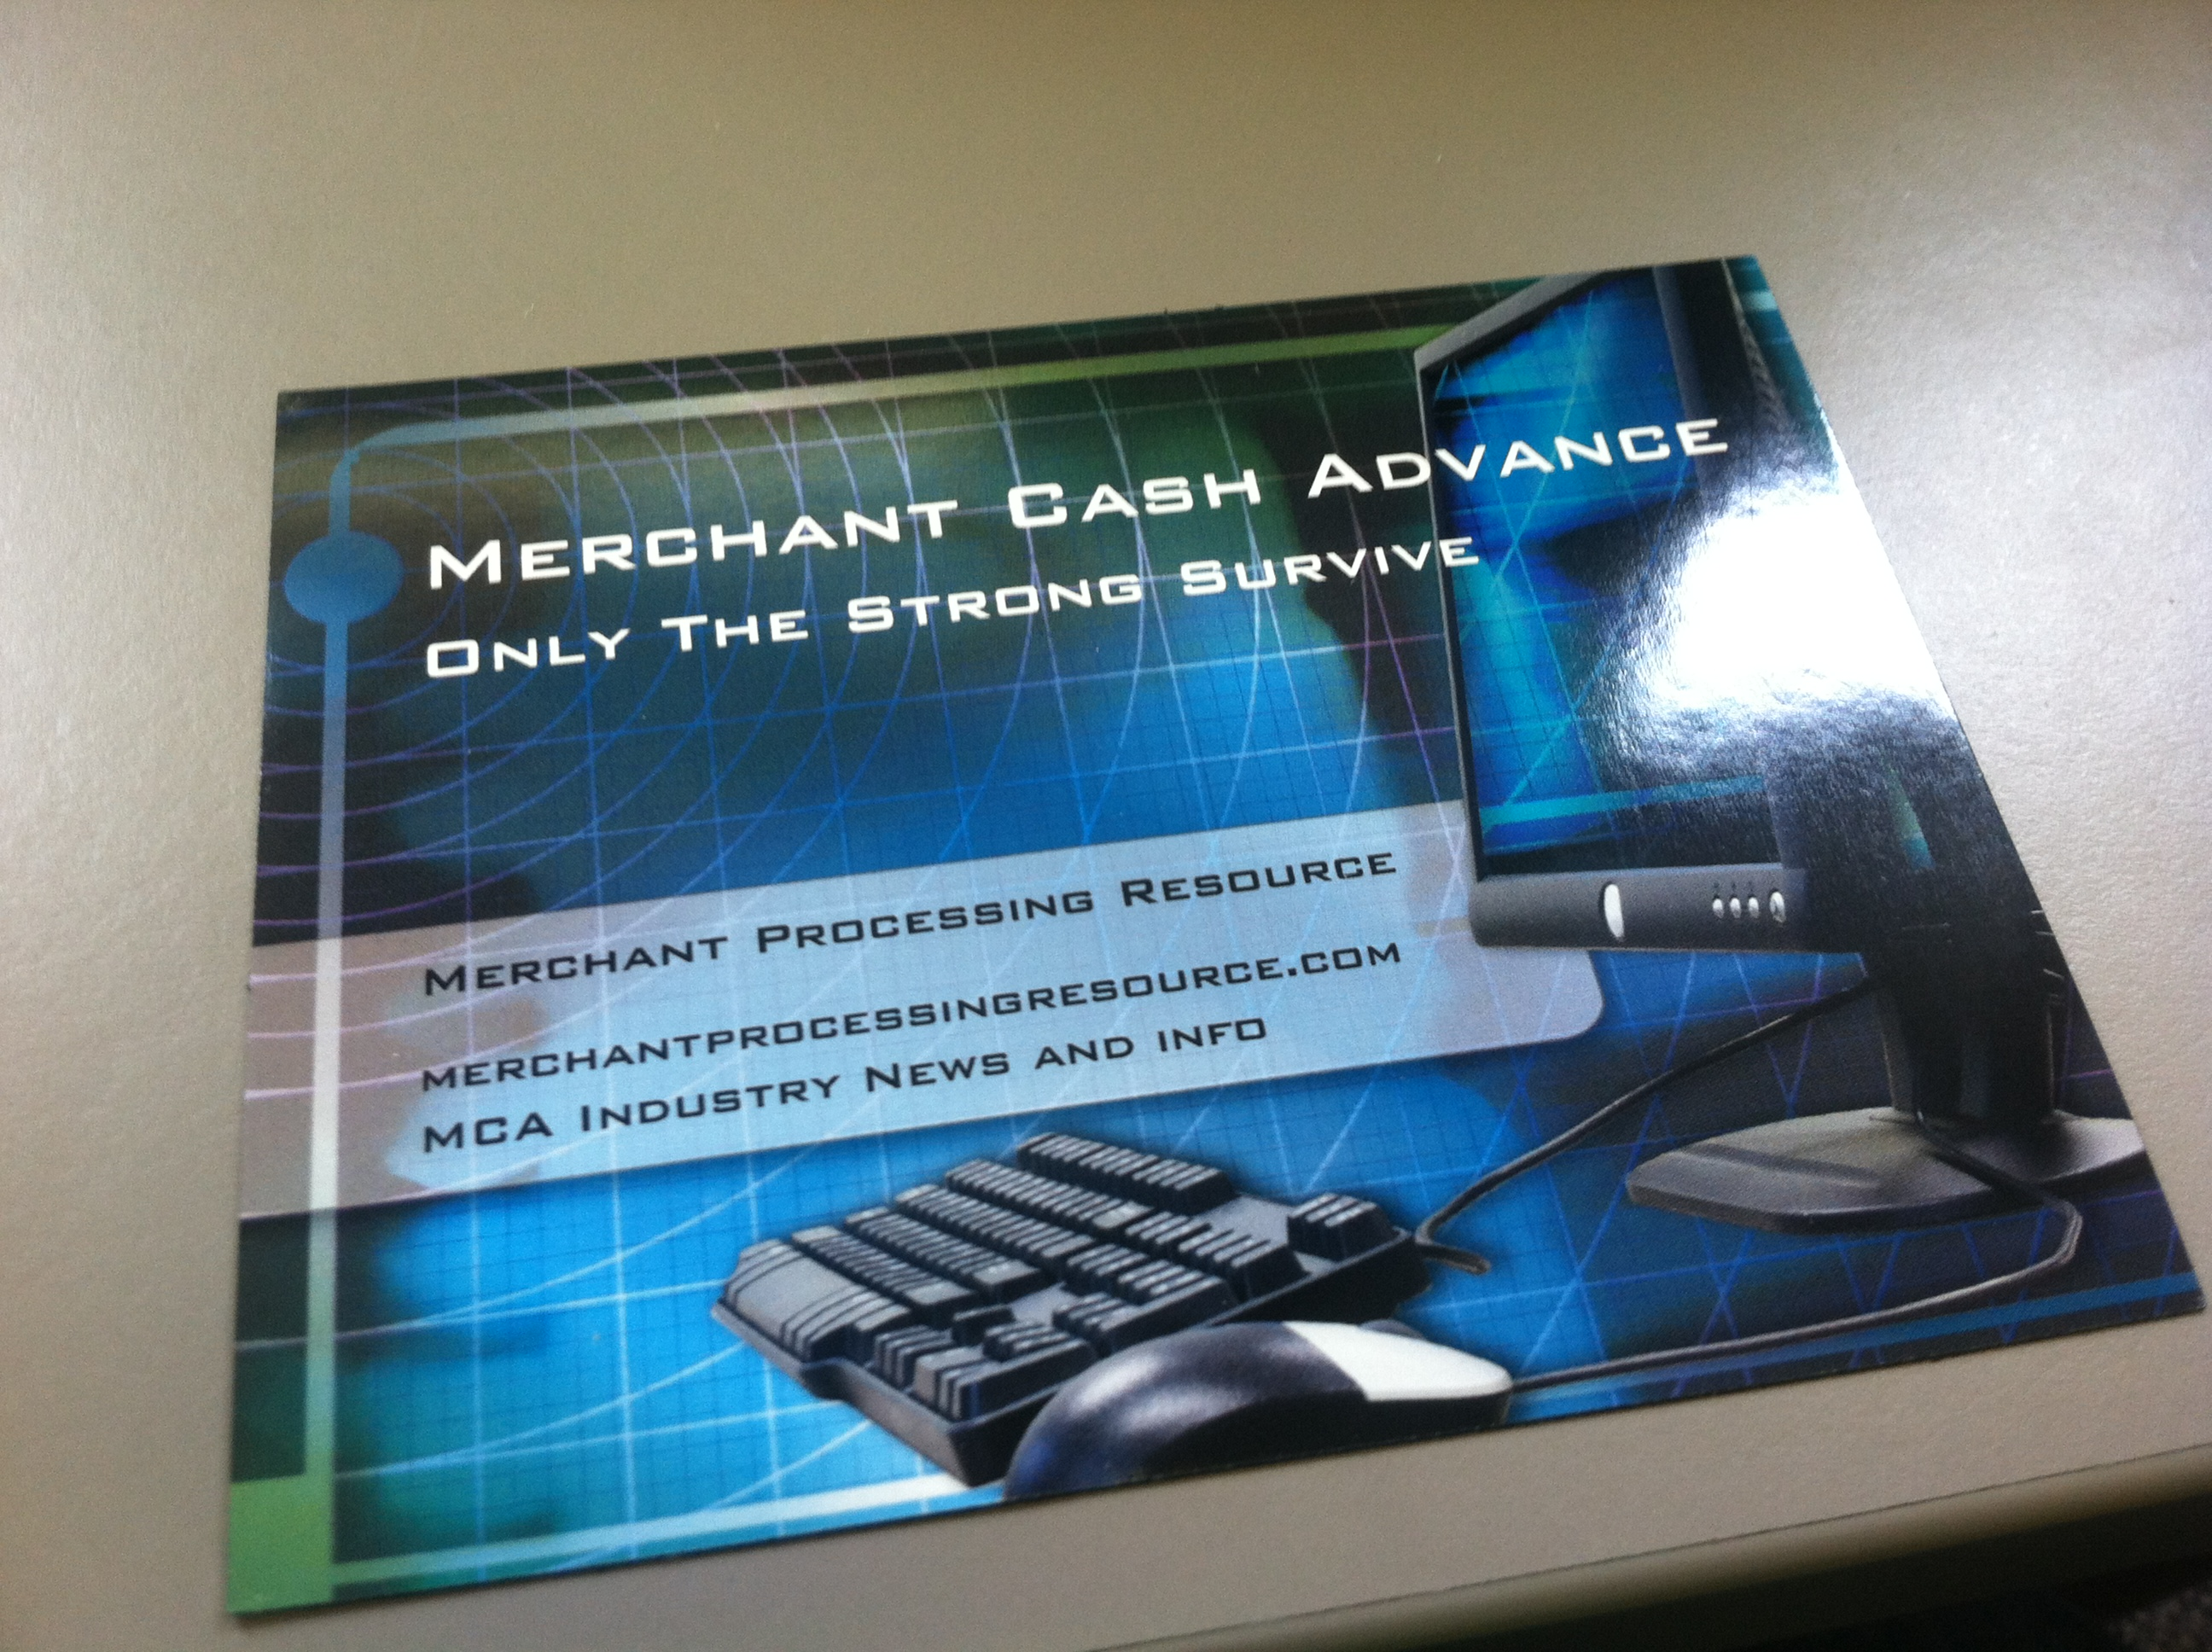 merchant cash advance magnet